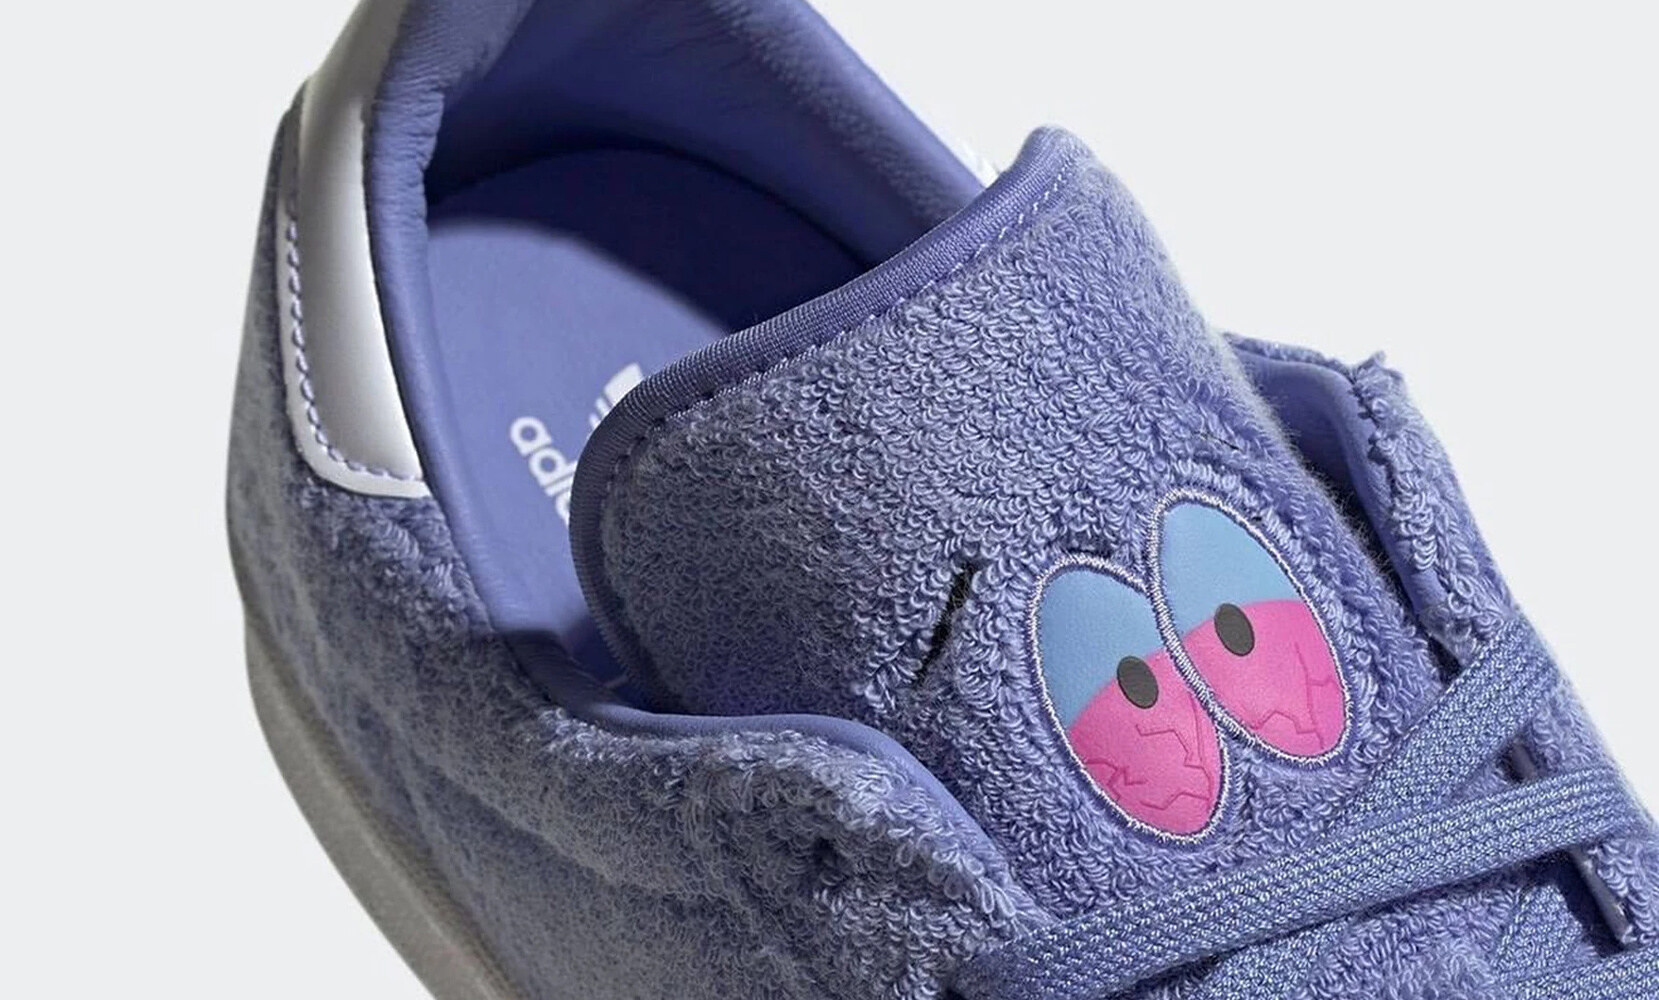 South Park x adidas Campus 80s Towelie